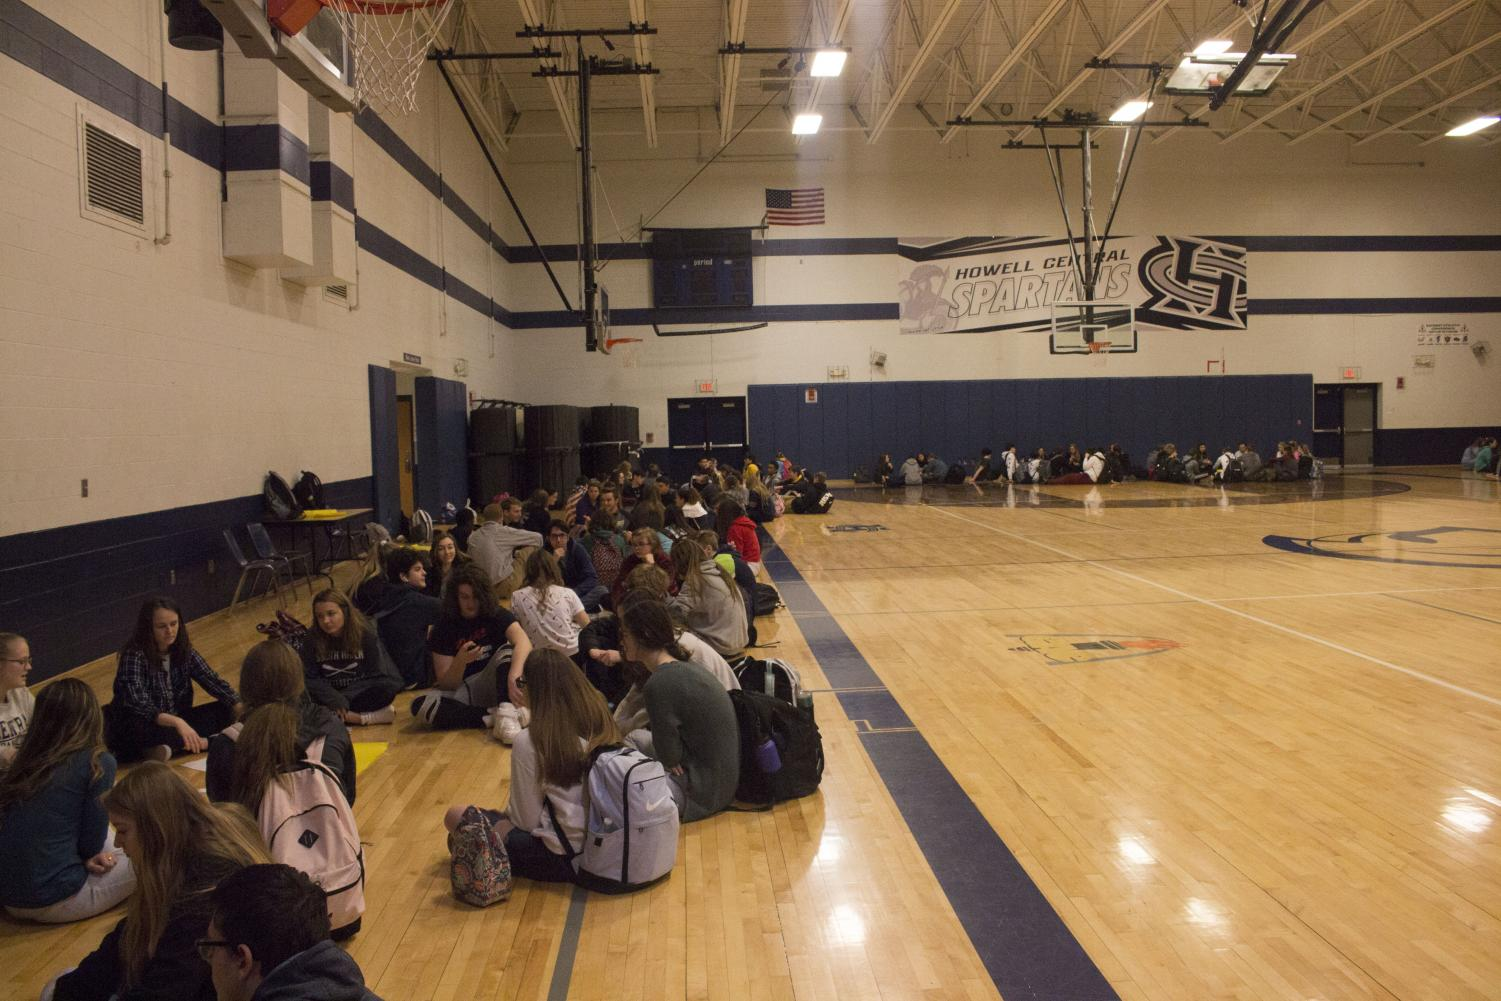 CIRCLE UP: The freshman circles took place in the small gym on Feb. 20 during seminar. The prompt for this meeting was passion, which the freshmen took turns answering.